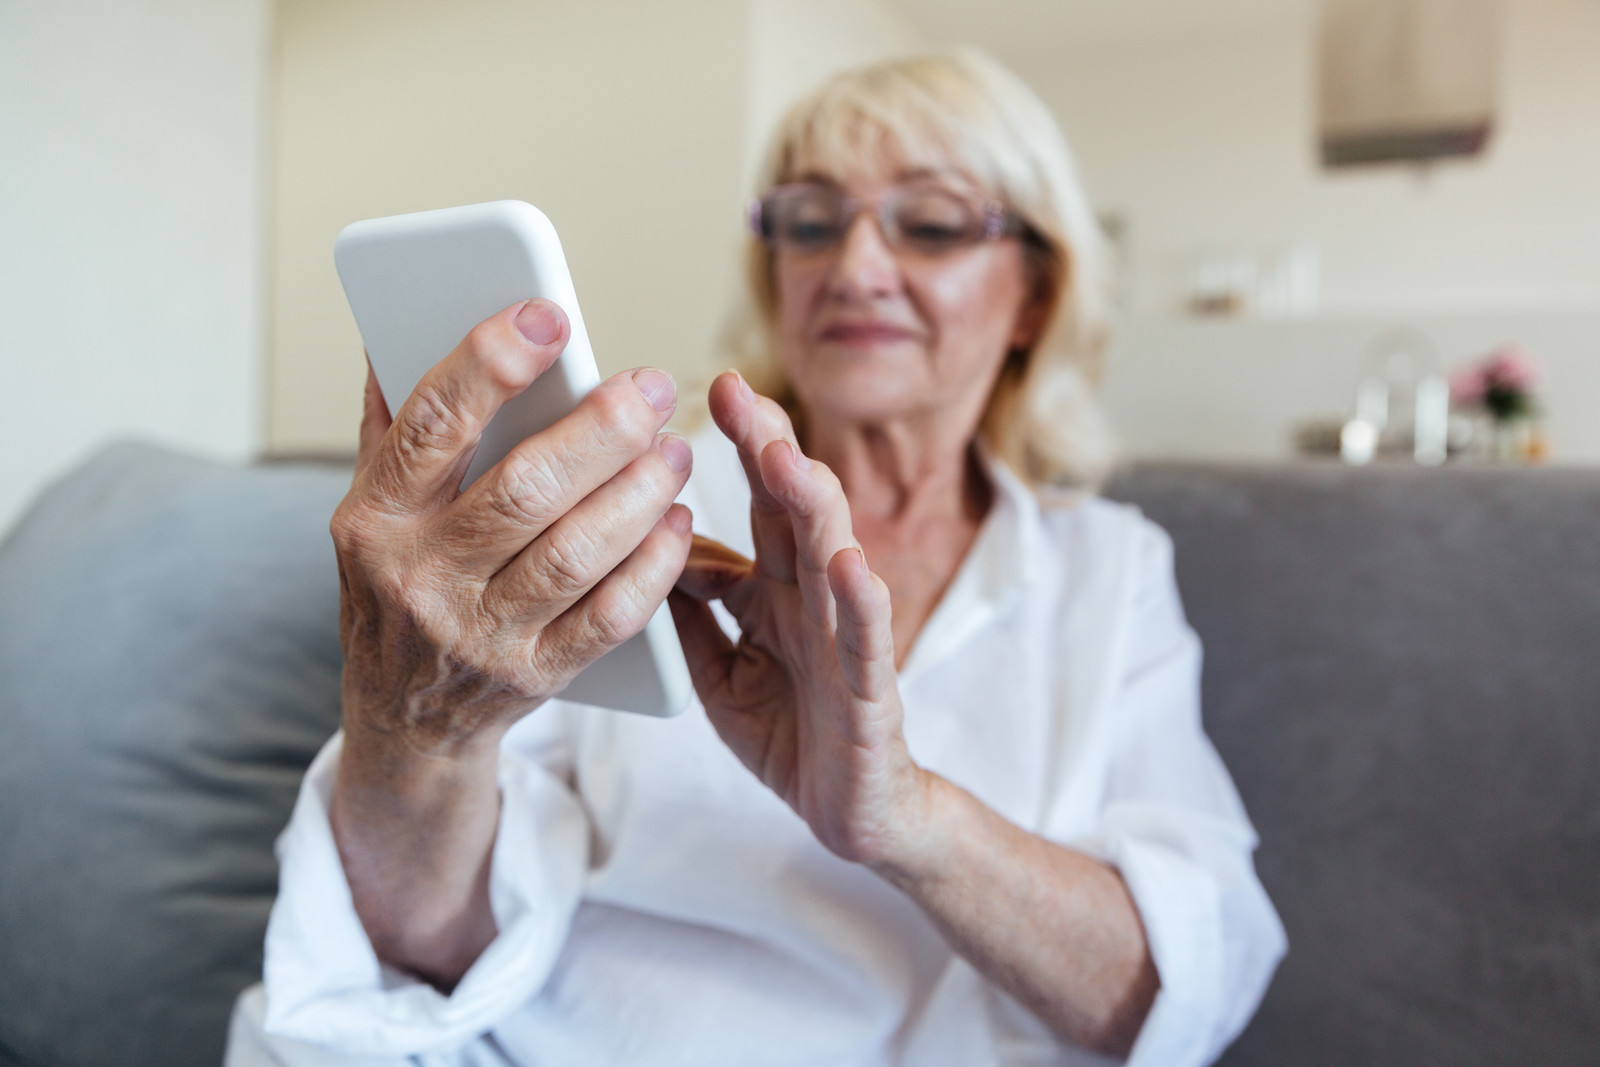 senior woman pressing numbers on her phone while sitting on her couch